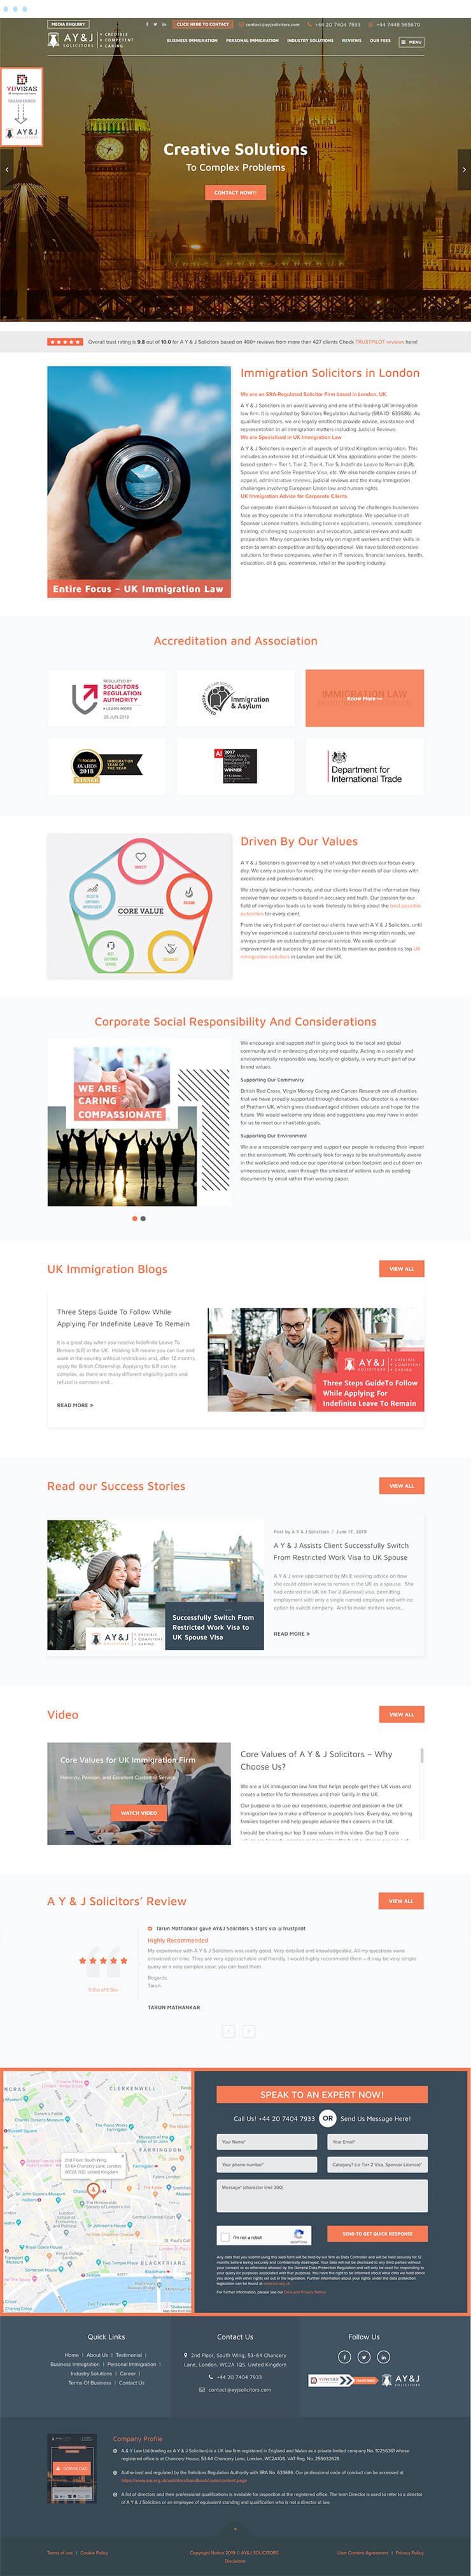 AYJ Solicitors Mockup homepage